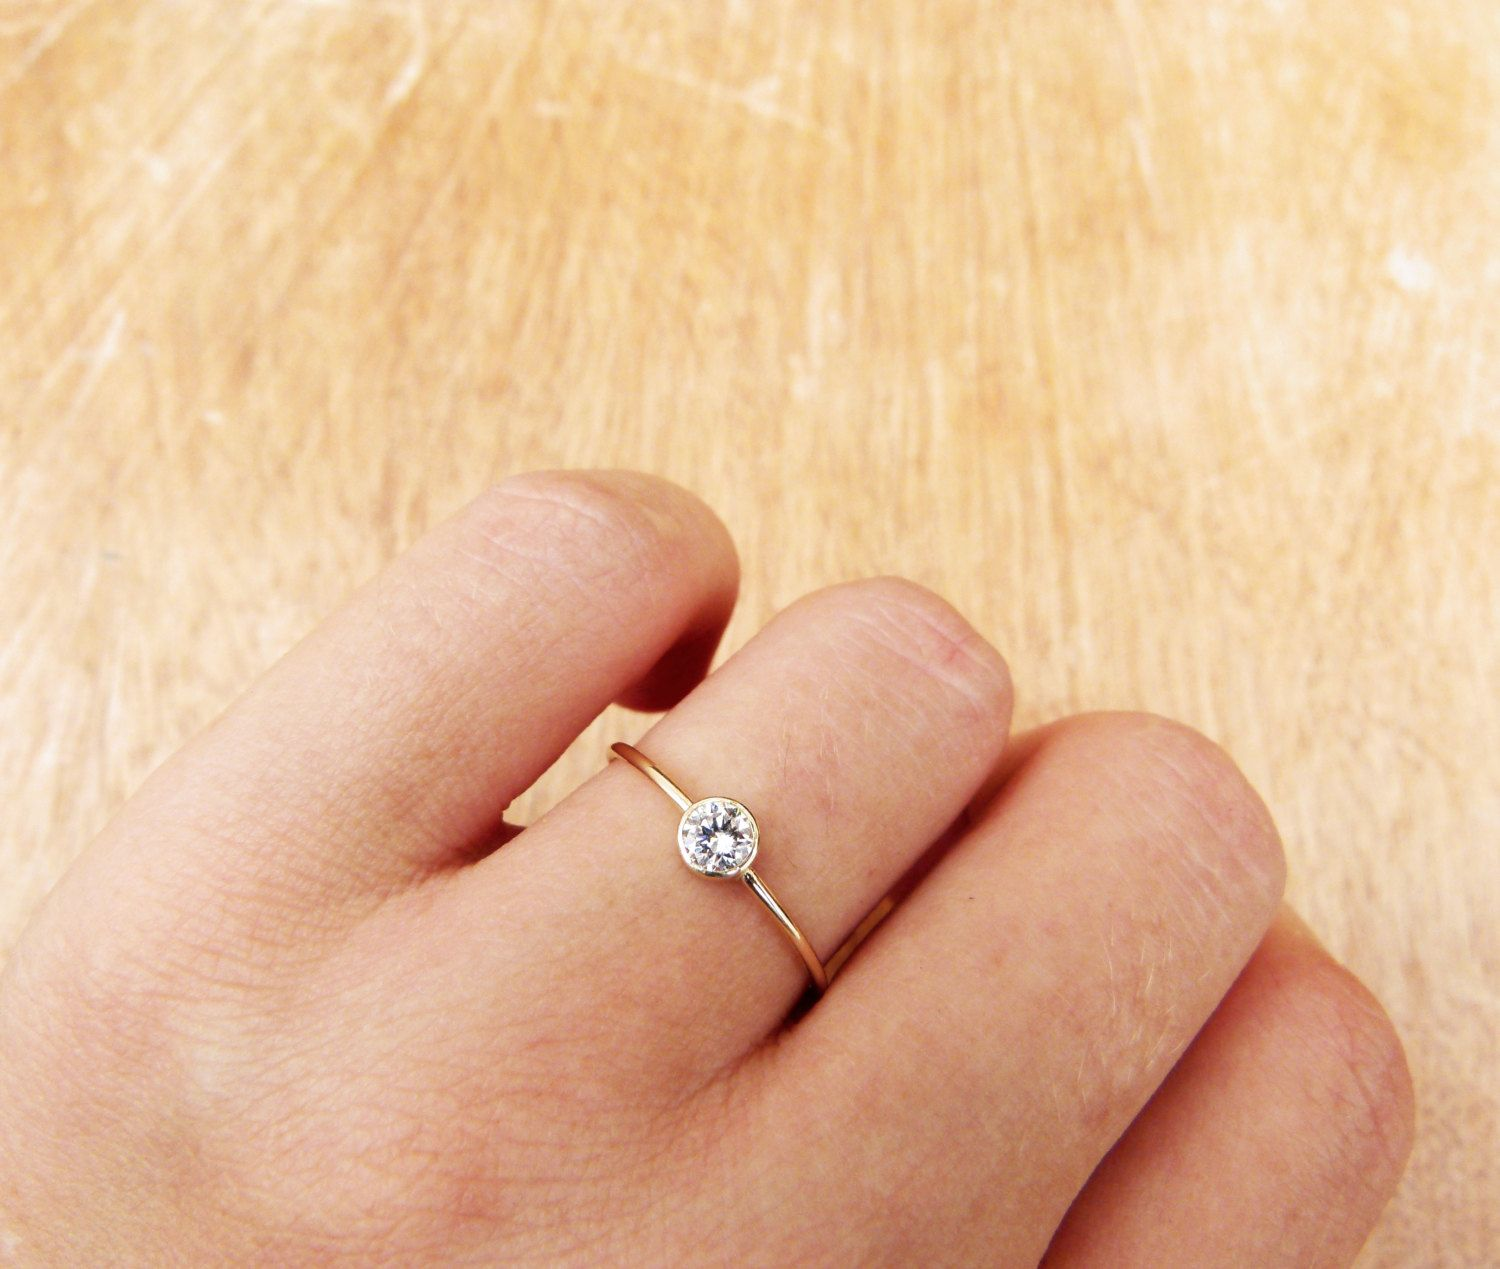 tiny wedding ring Delicate Engagement Ring Simple Engagement Ring 0 2 Carat Diamond Minimalist Diamond Ring Round Cut Diamond Ring